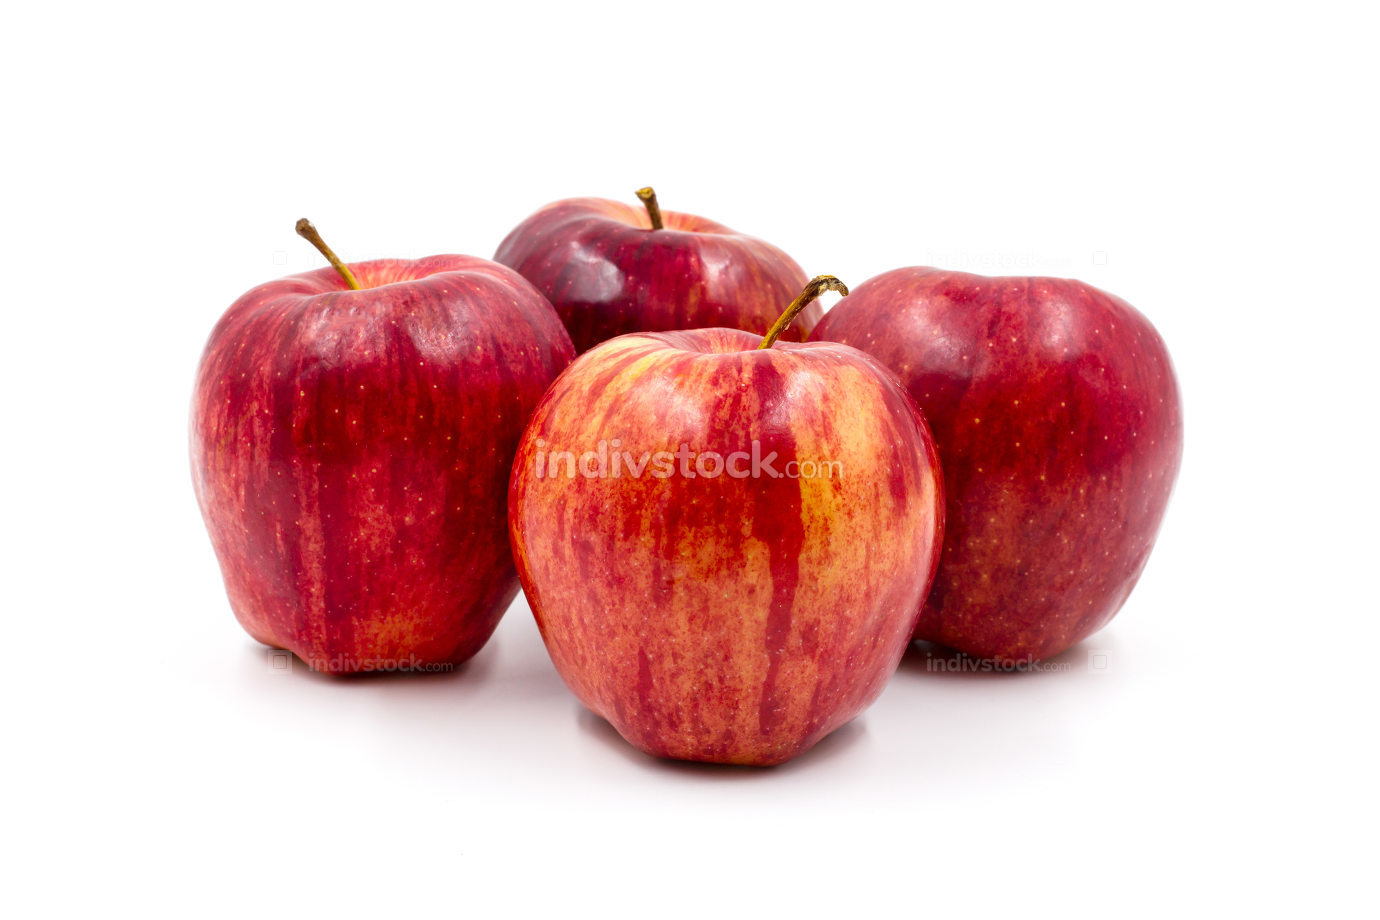 Red Apples isolated on white background.